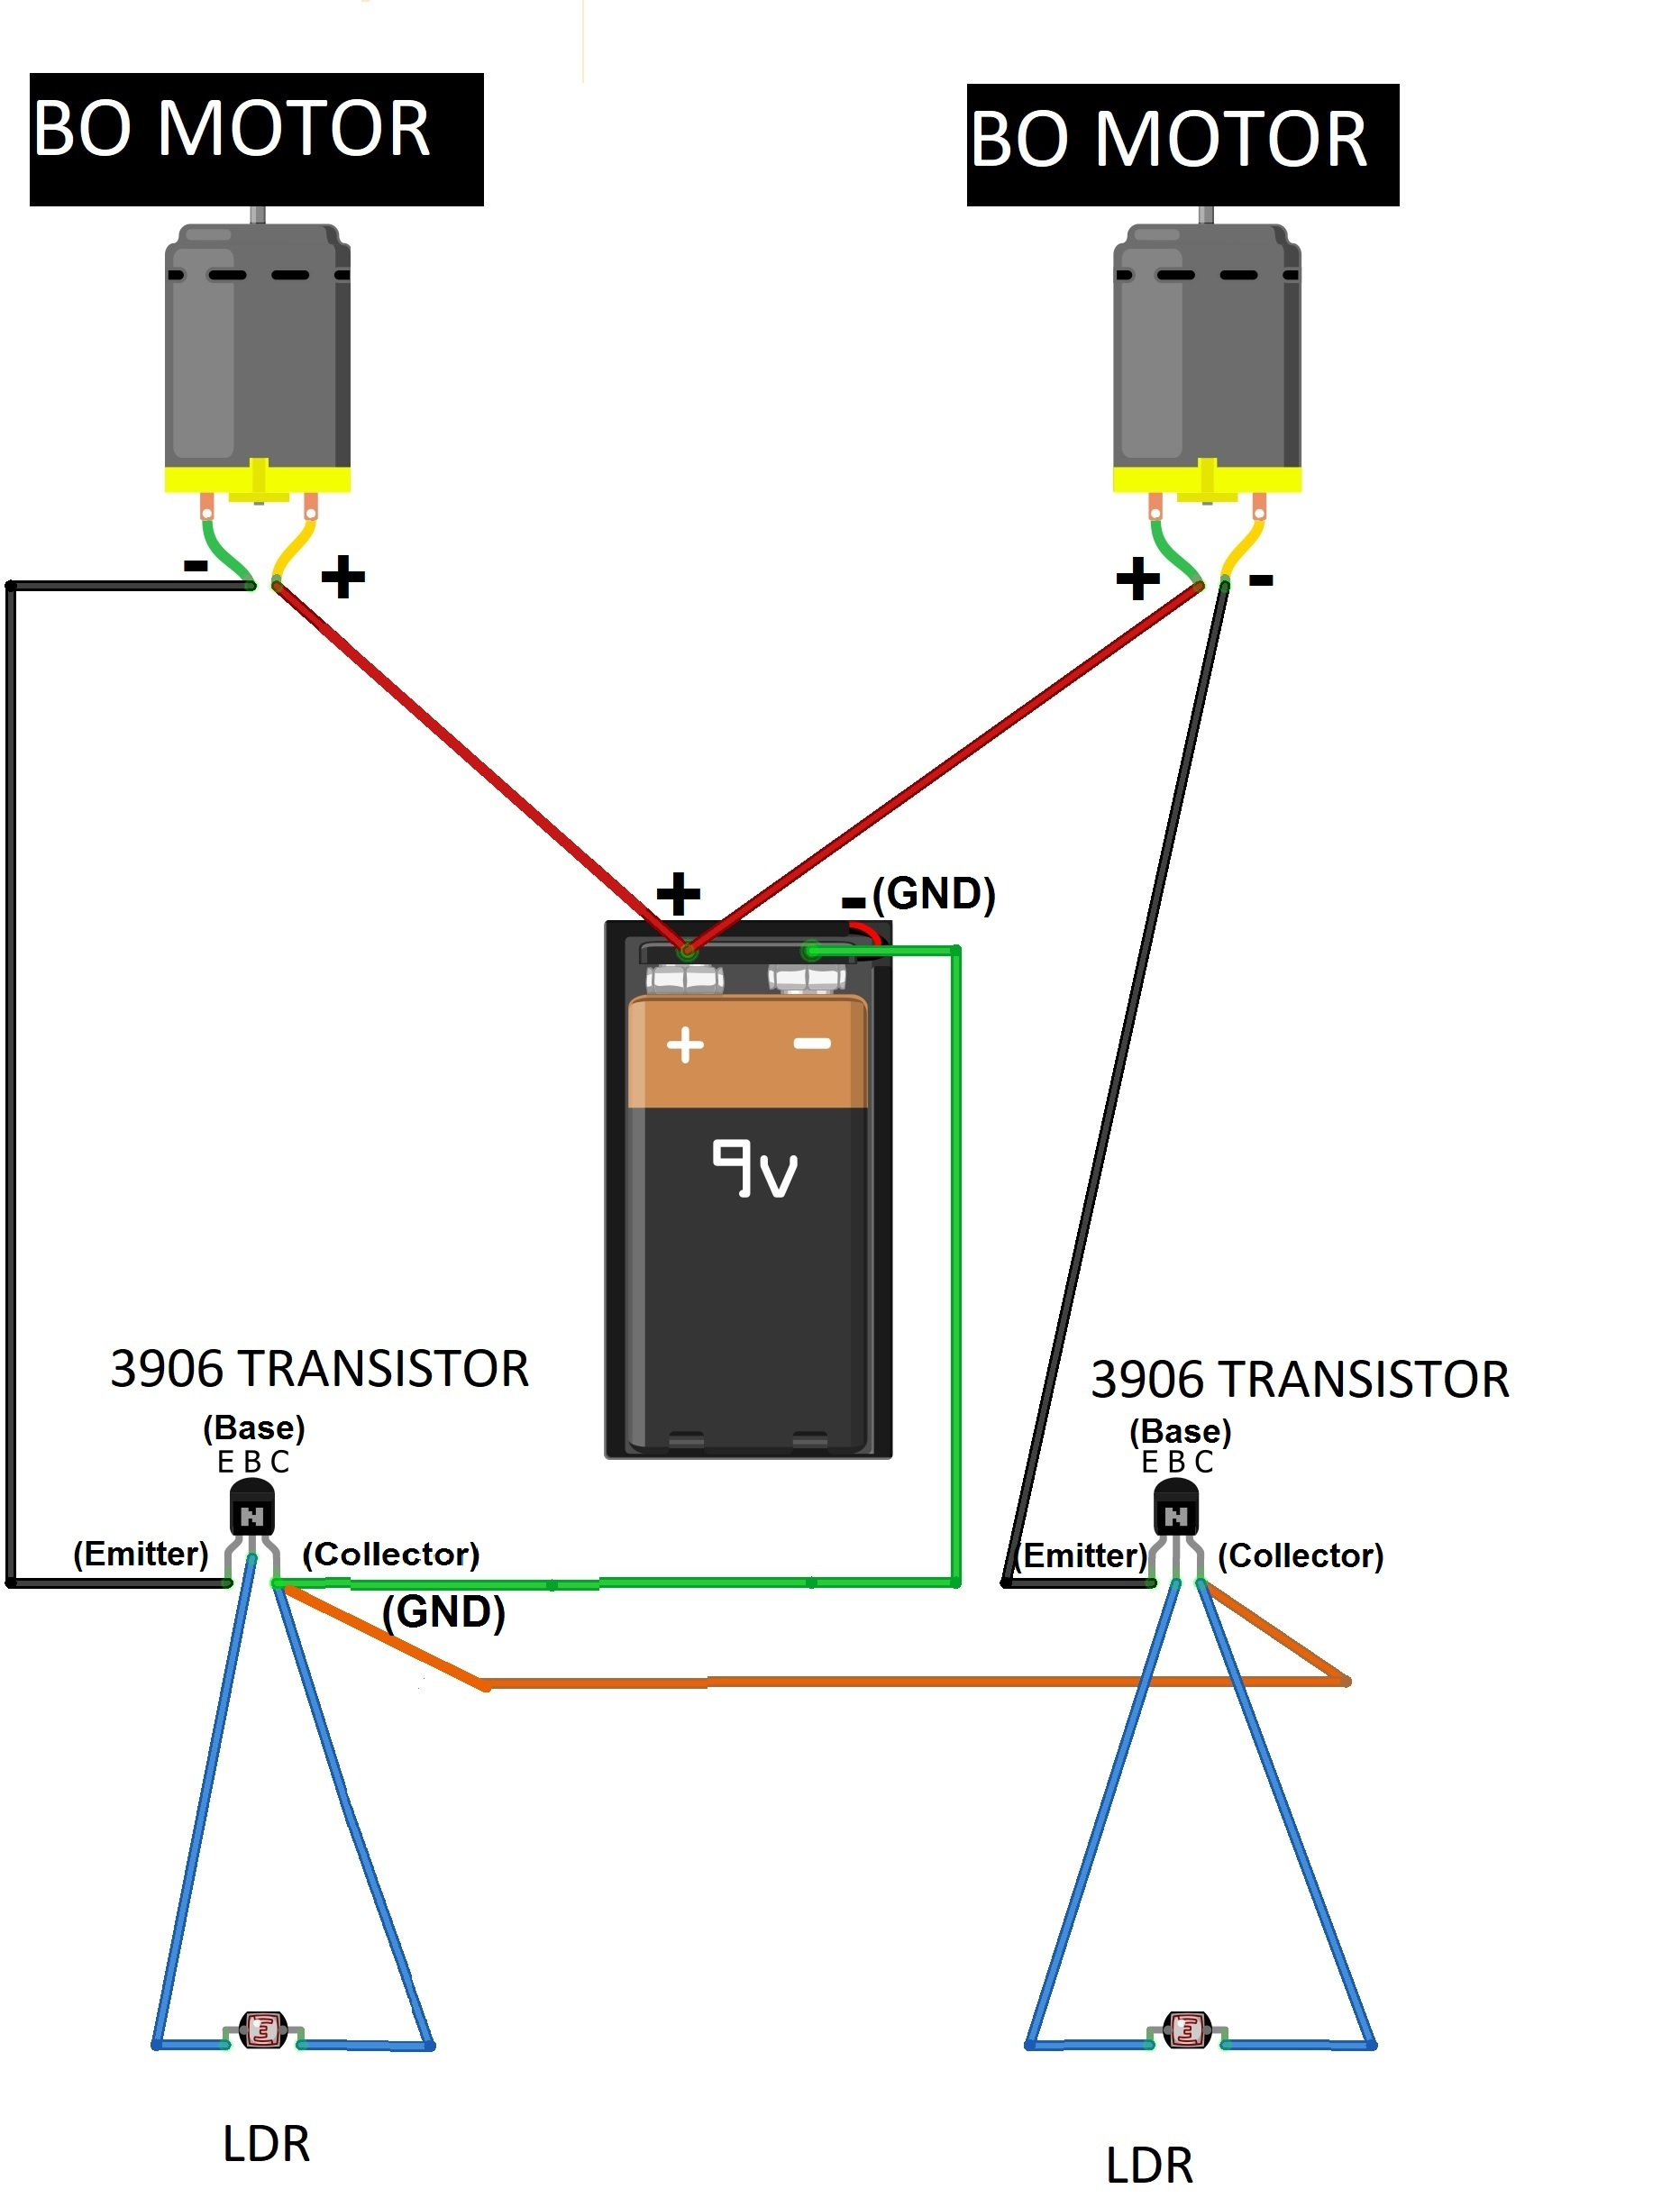 Make A Robot Car Using Ldr And Transistor 3906 Kt888 Rees52 Circuit Diagram Lastly It Should Be Made Sure That All The Connections Are In An Appropriate Manner